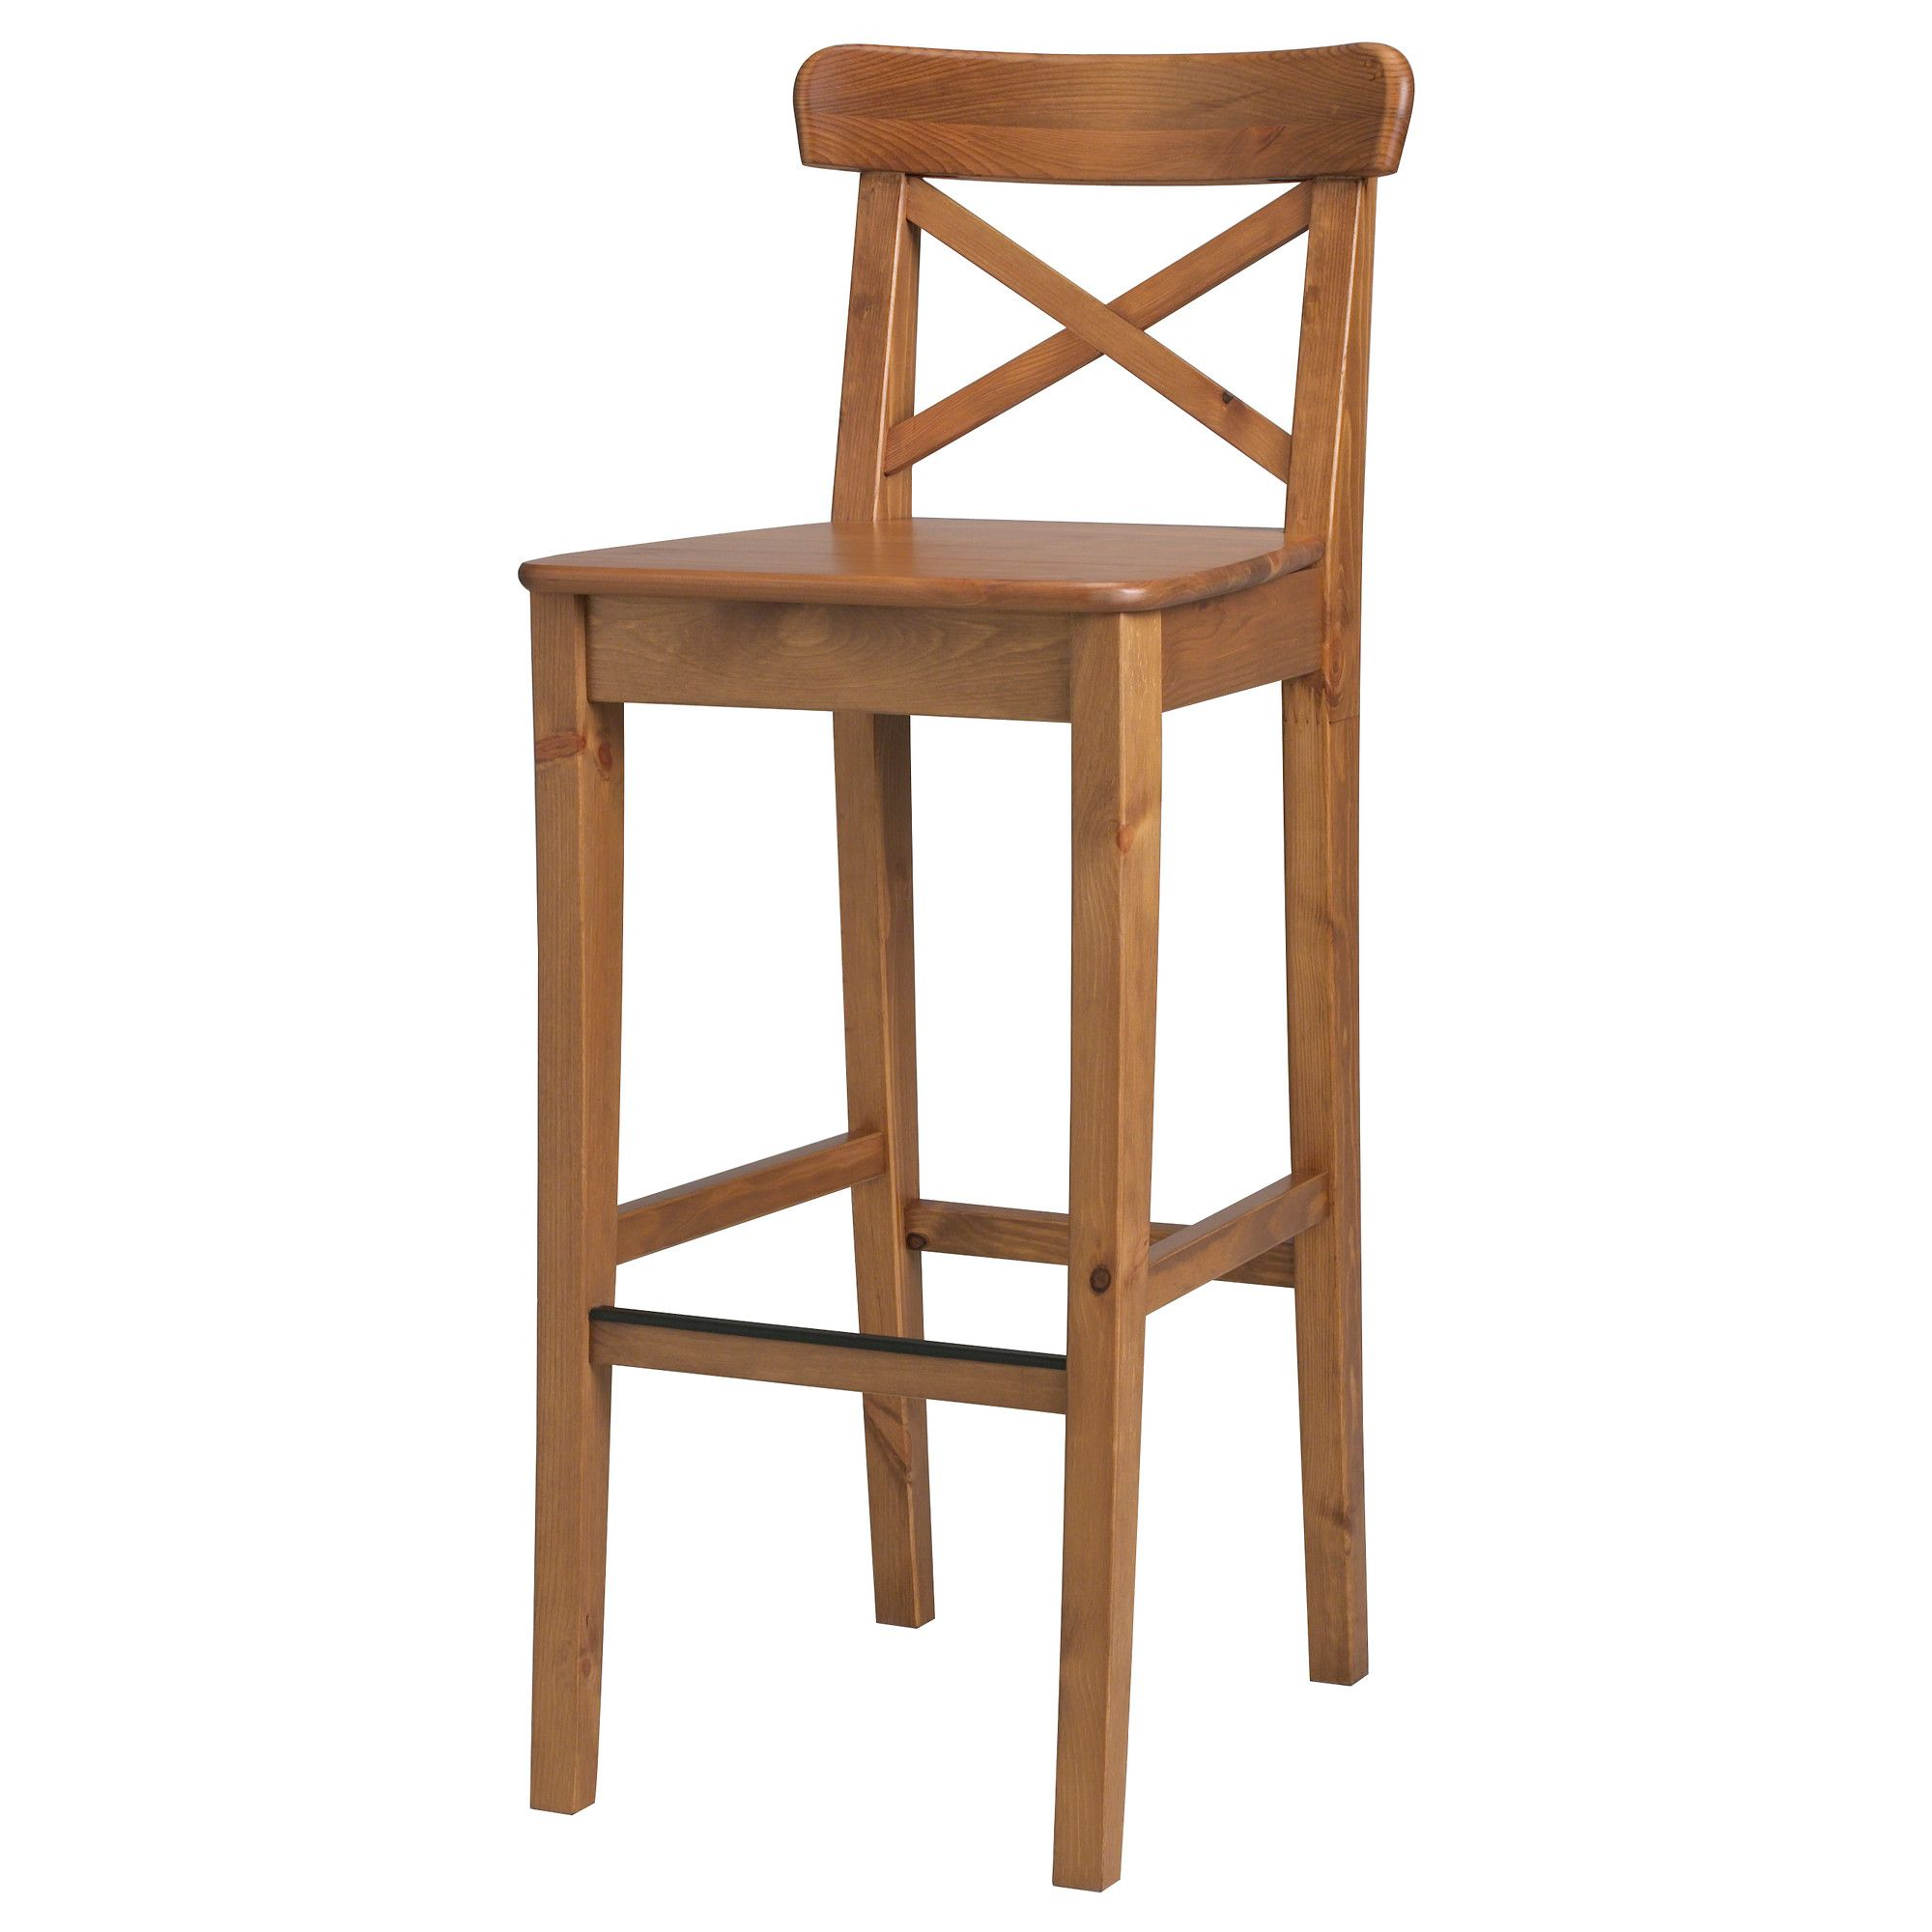 Kitchen Island Stools Ikea: INGOLF Bar Stool With Backrest